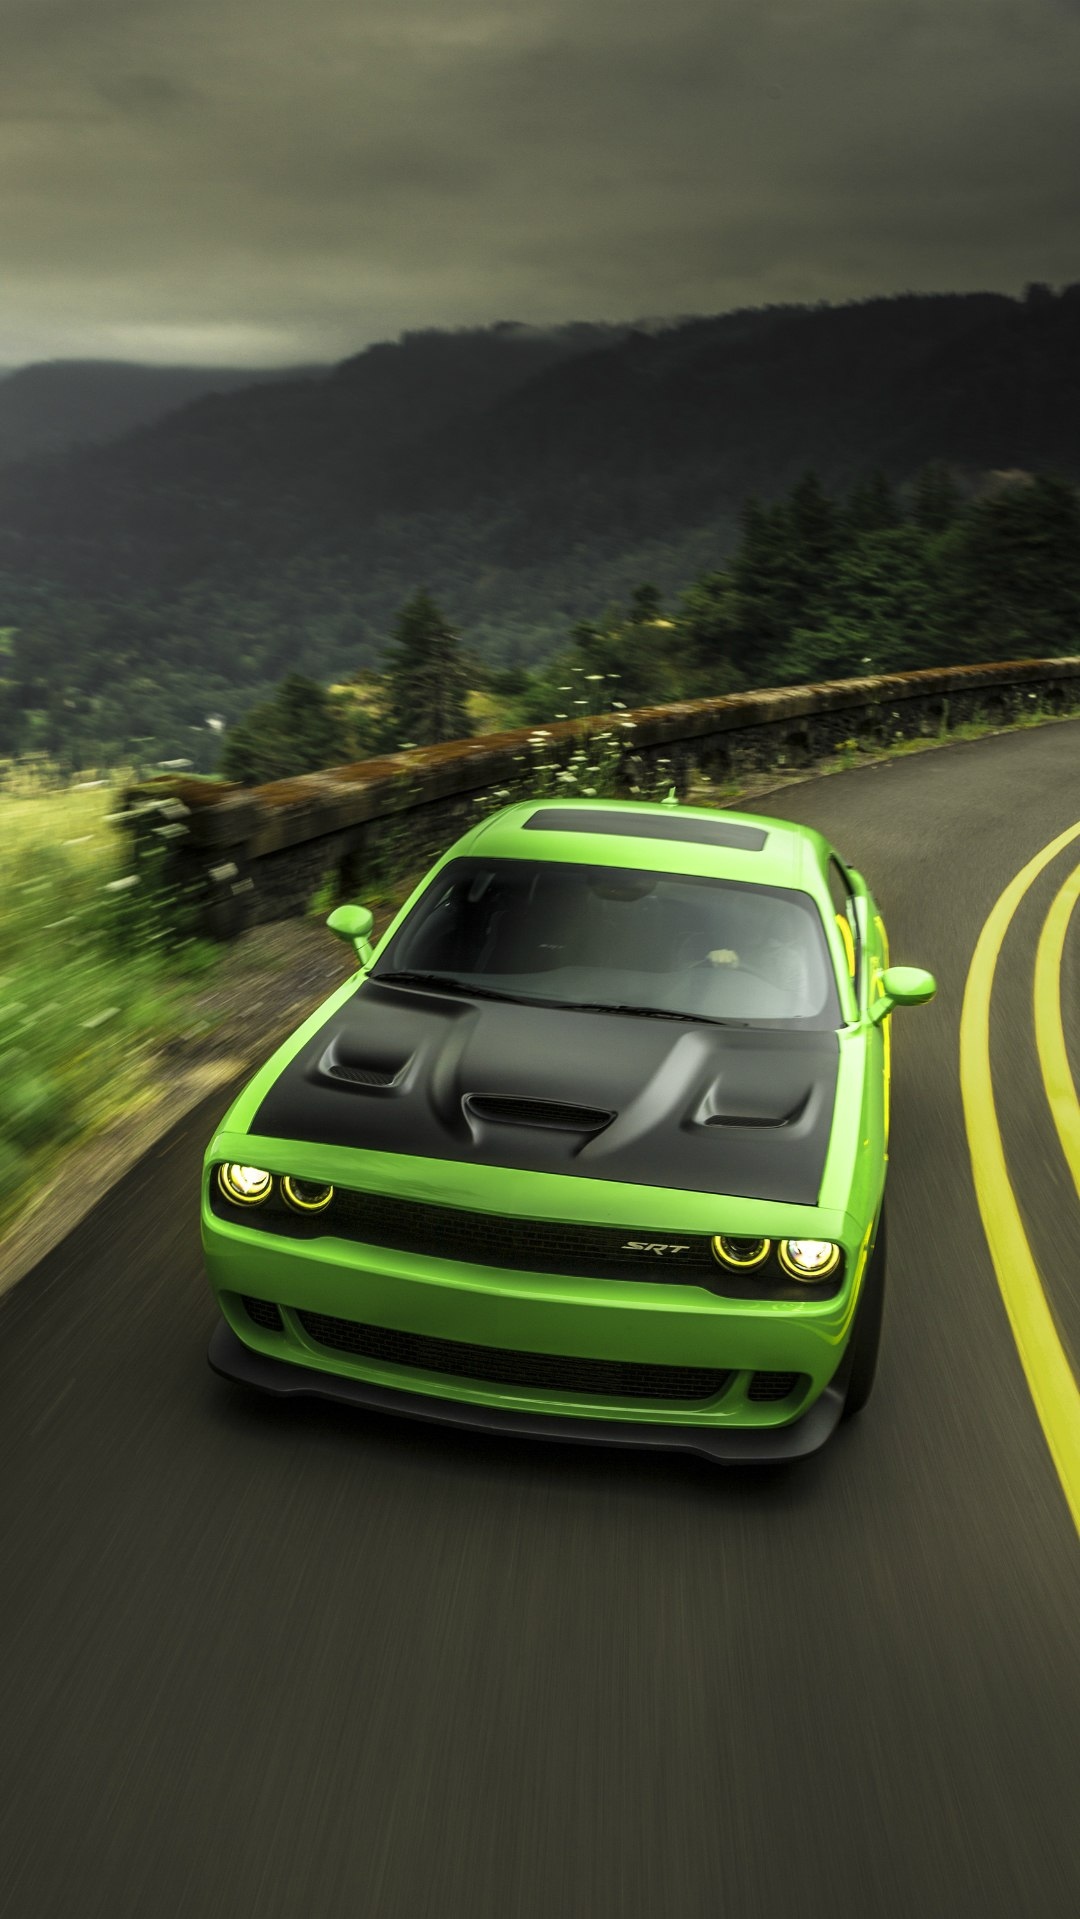 Dodge Challenger Srt Green Iphone Wallpaper Iphone